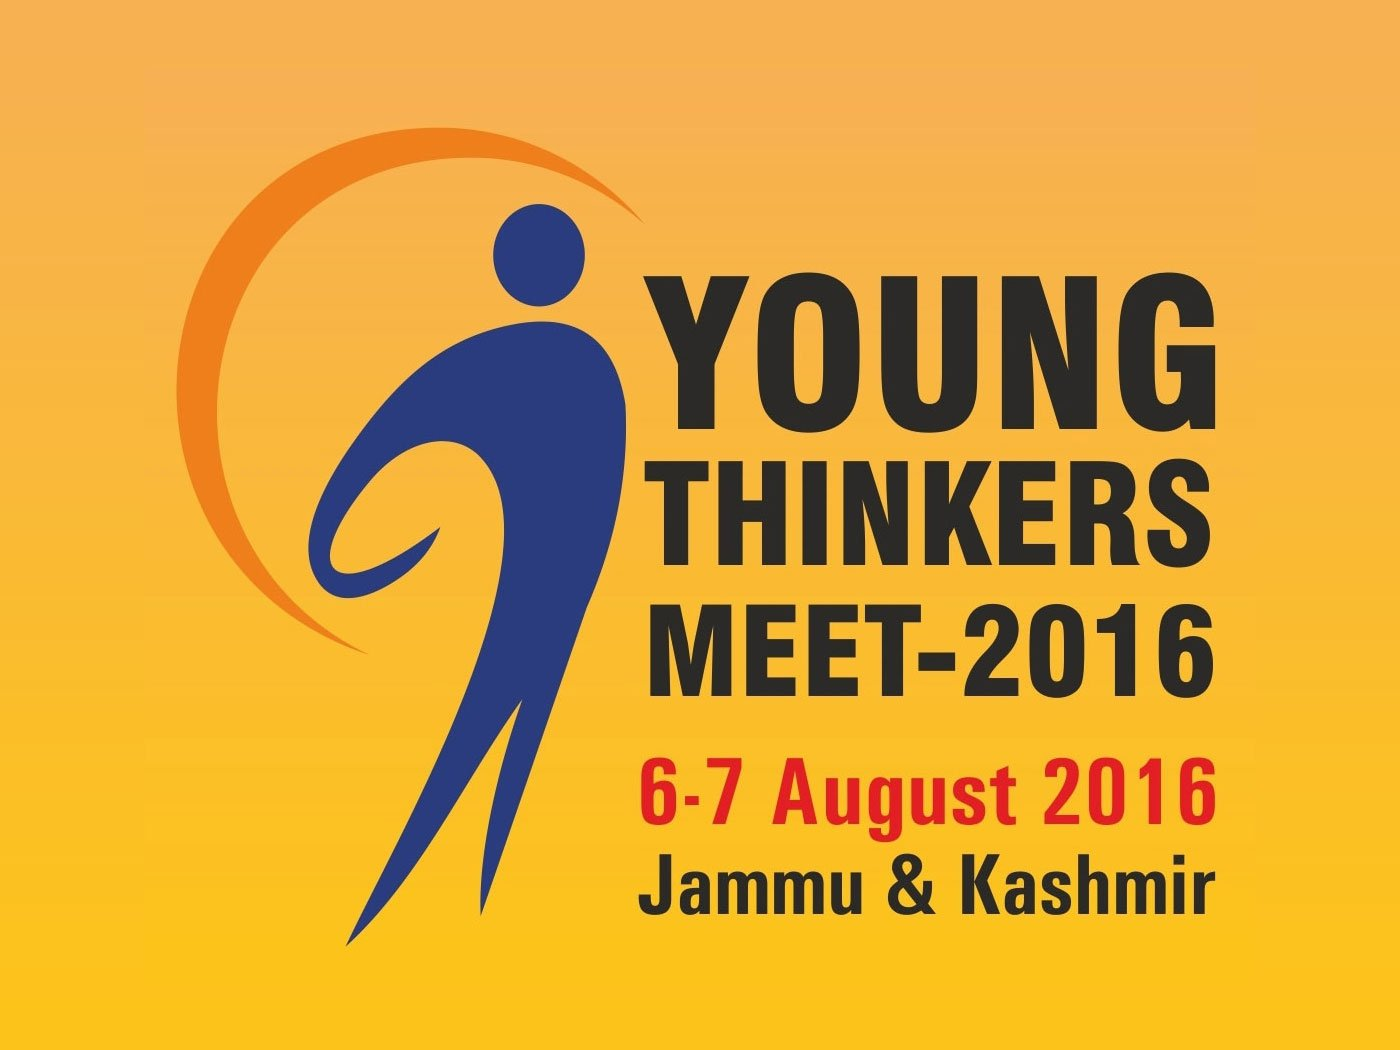 Young Thinkers Meet-2016